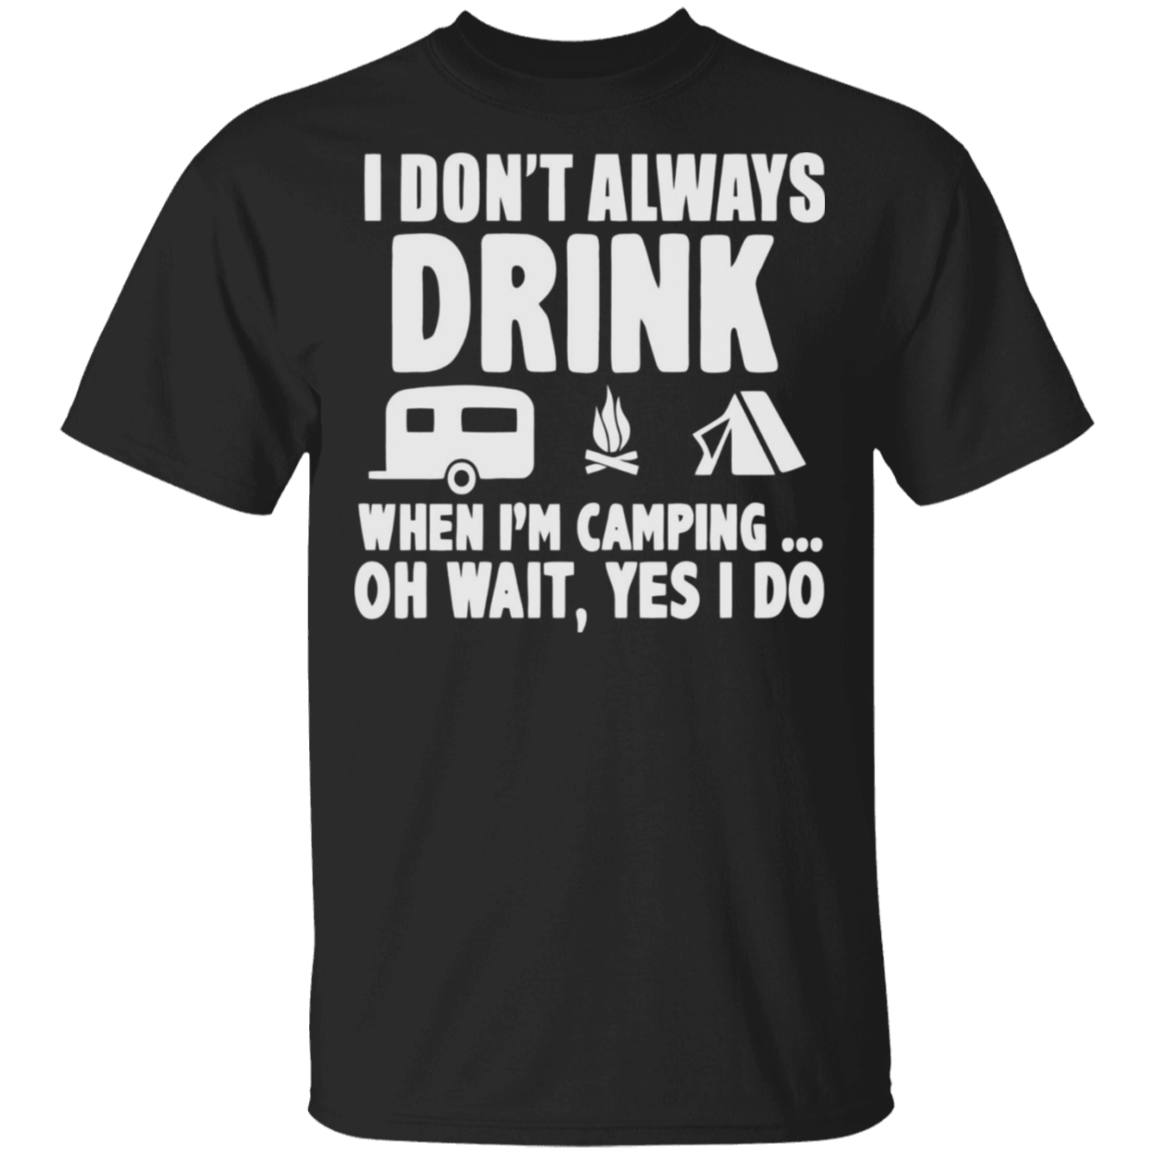 I Don't Always Drink When I'M Camping Shirt Funny Shirts